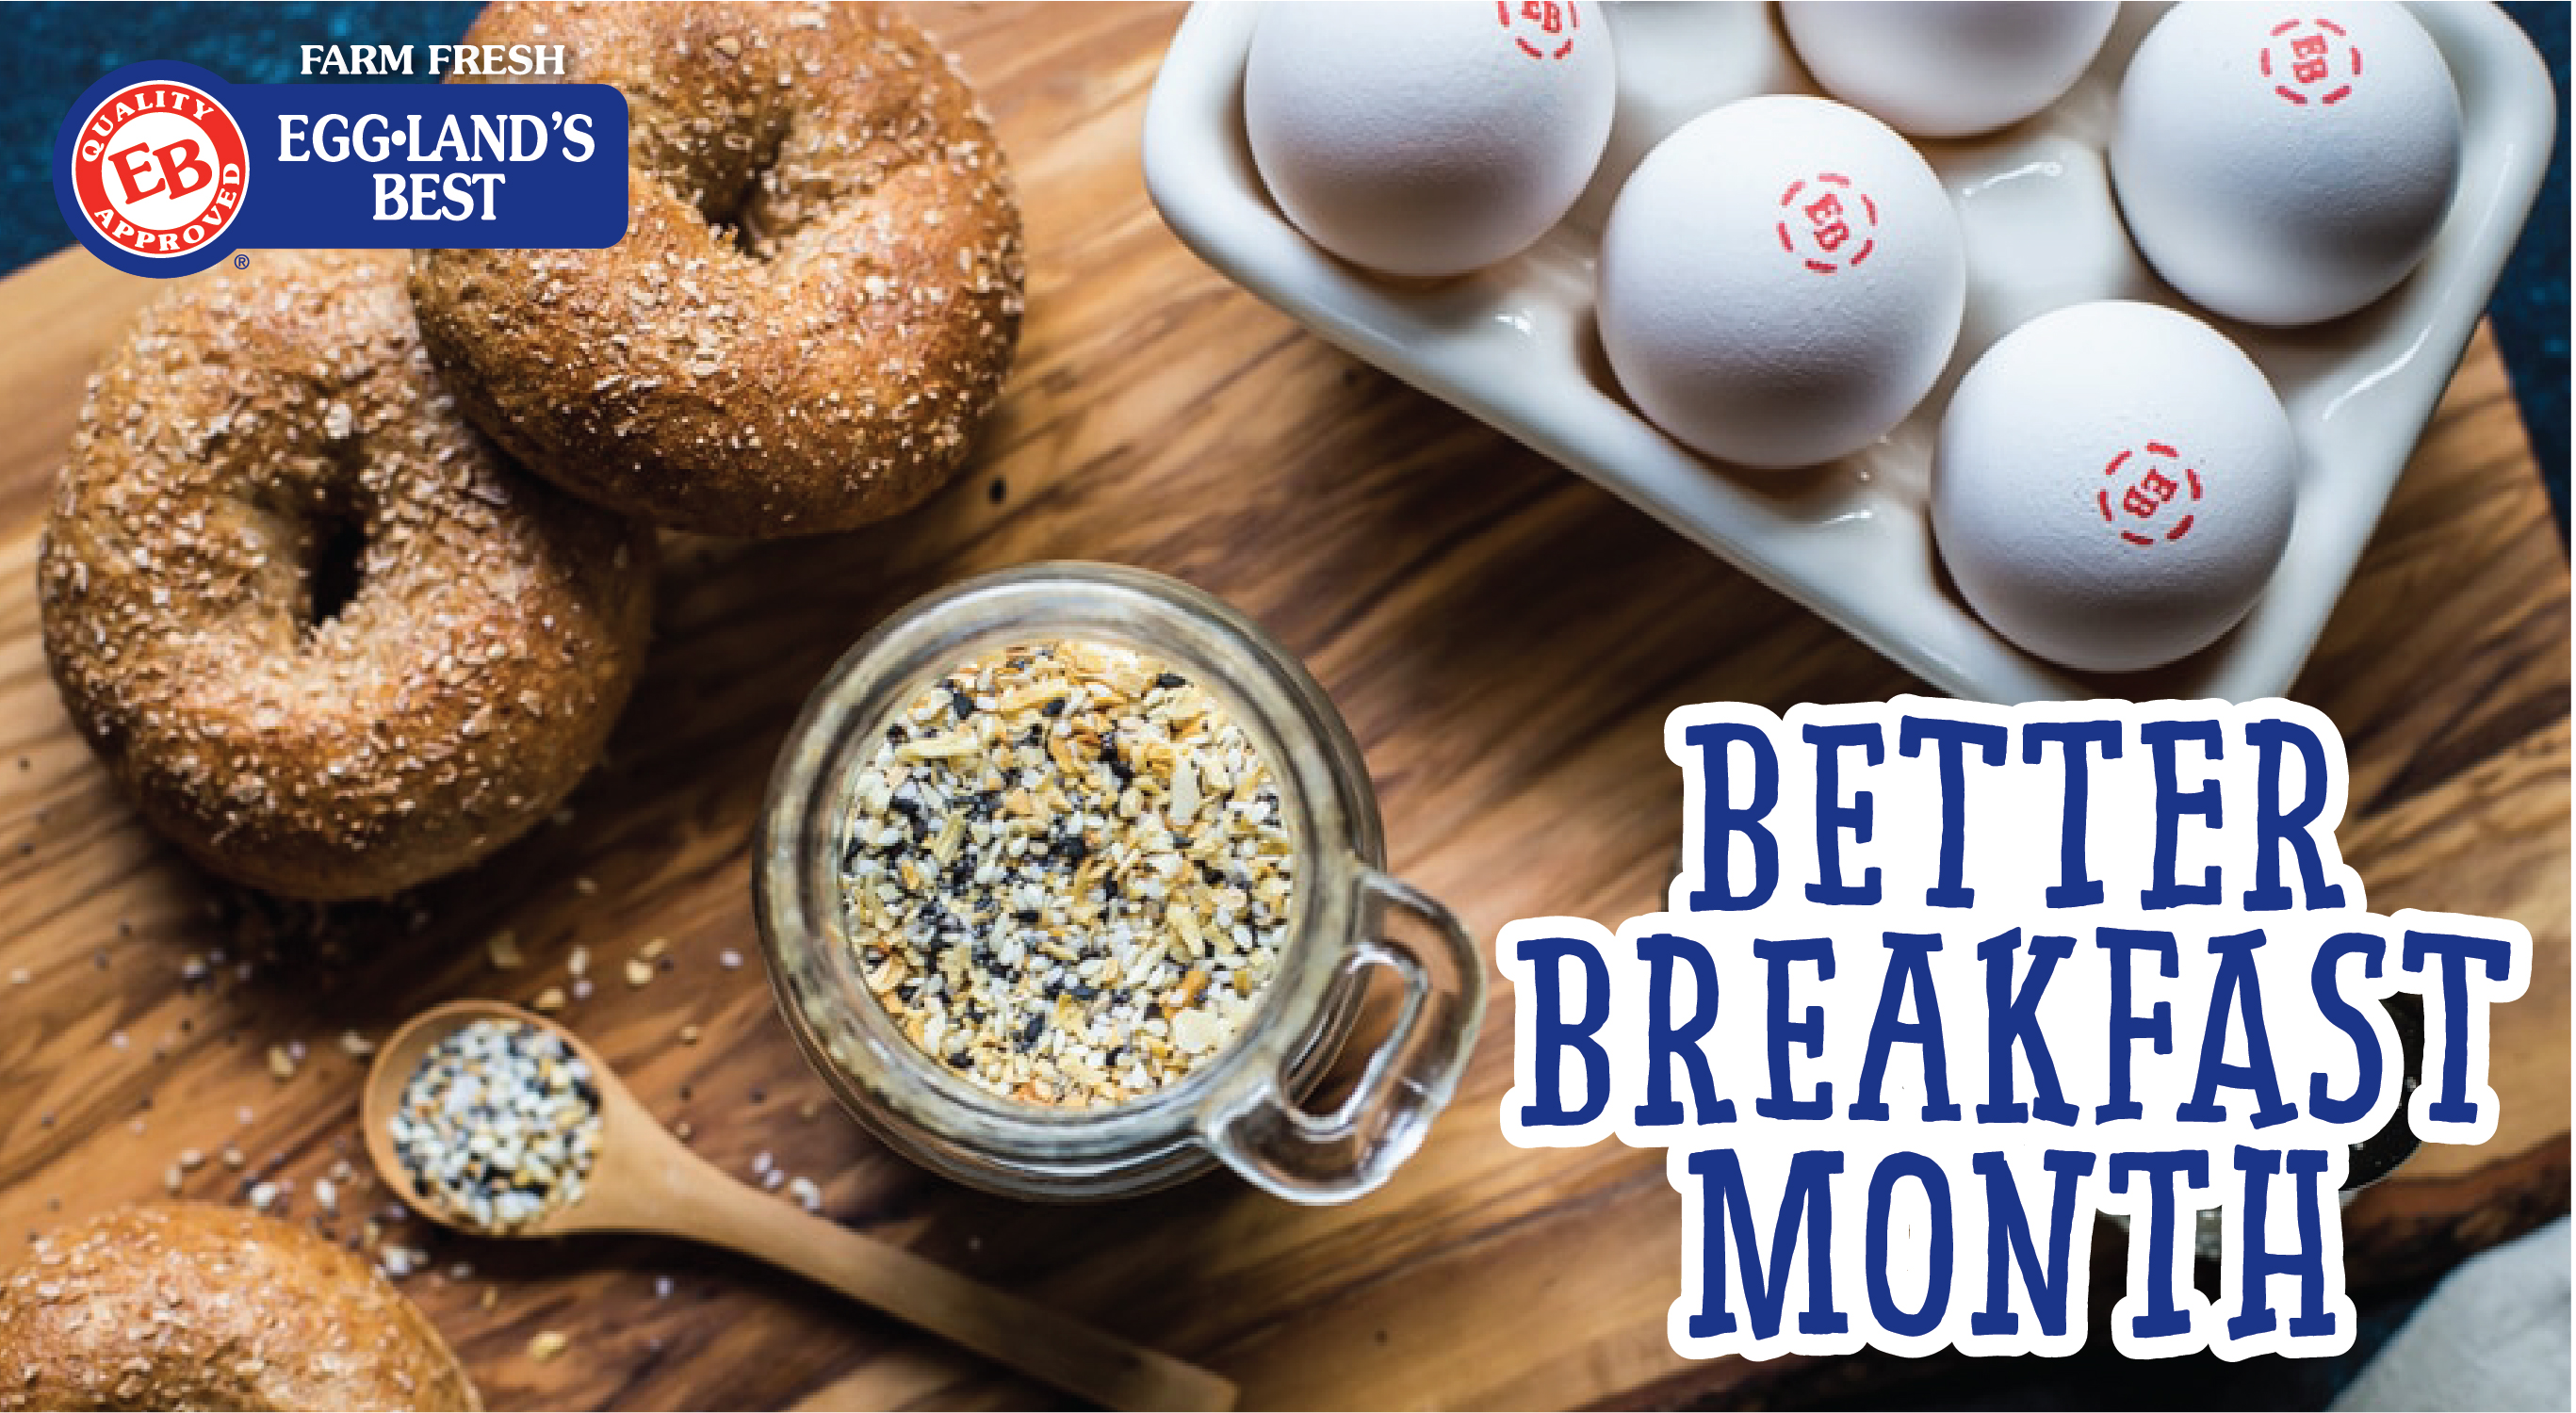 Make Better Breakfast Month Even Better with EB!